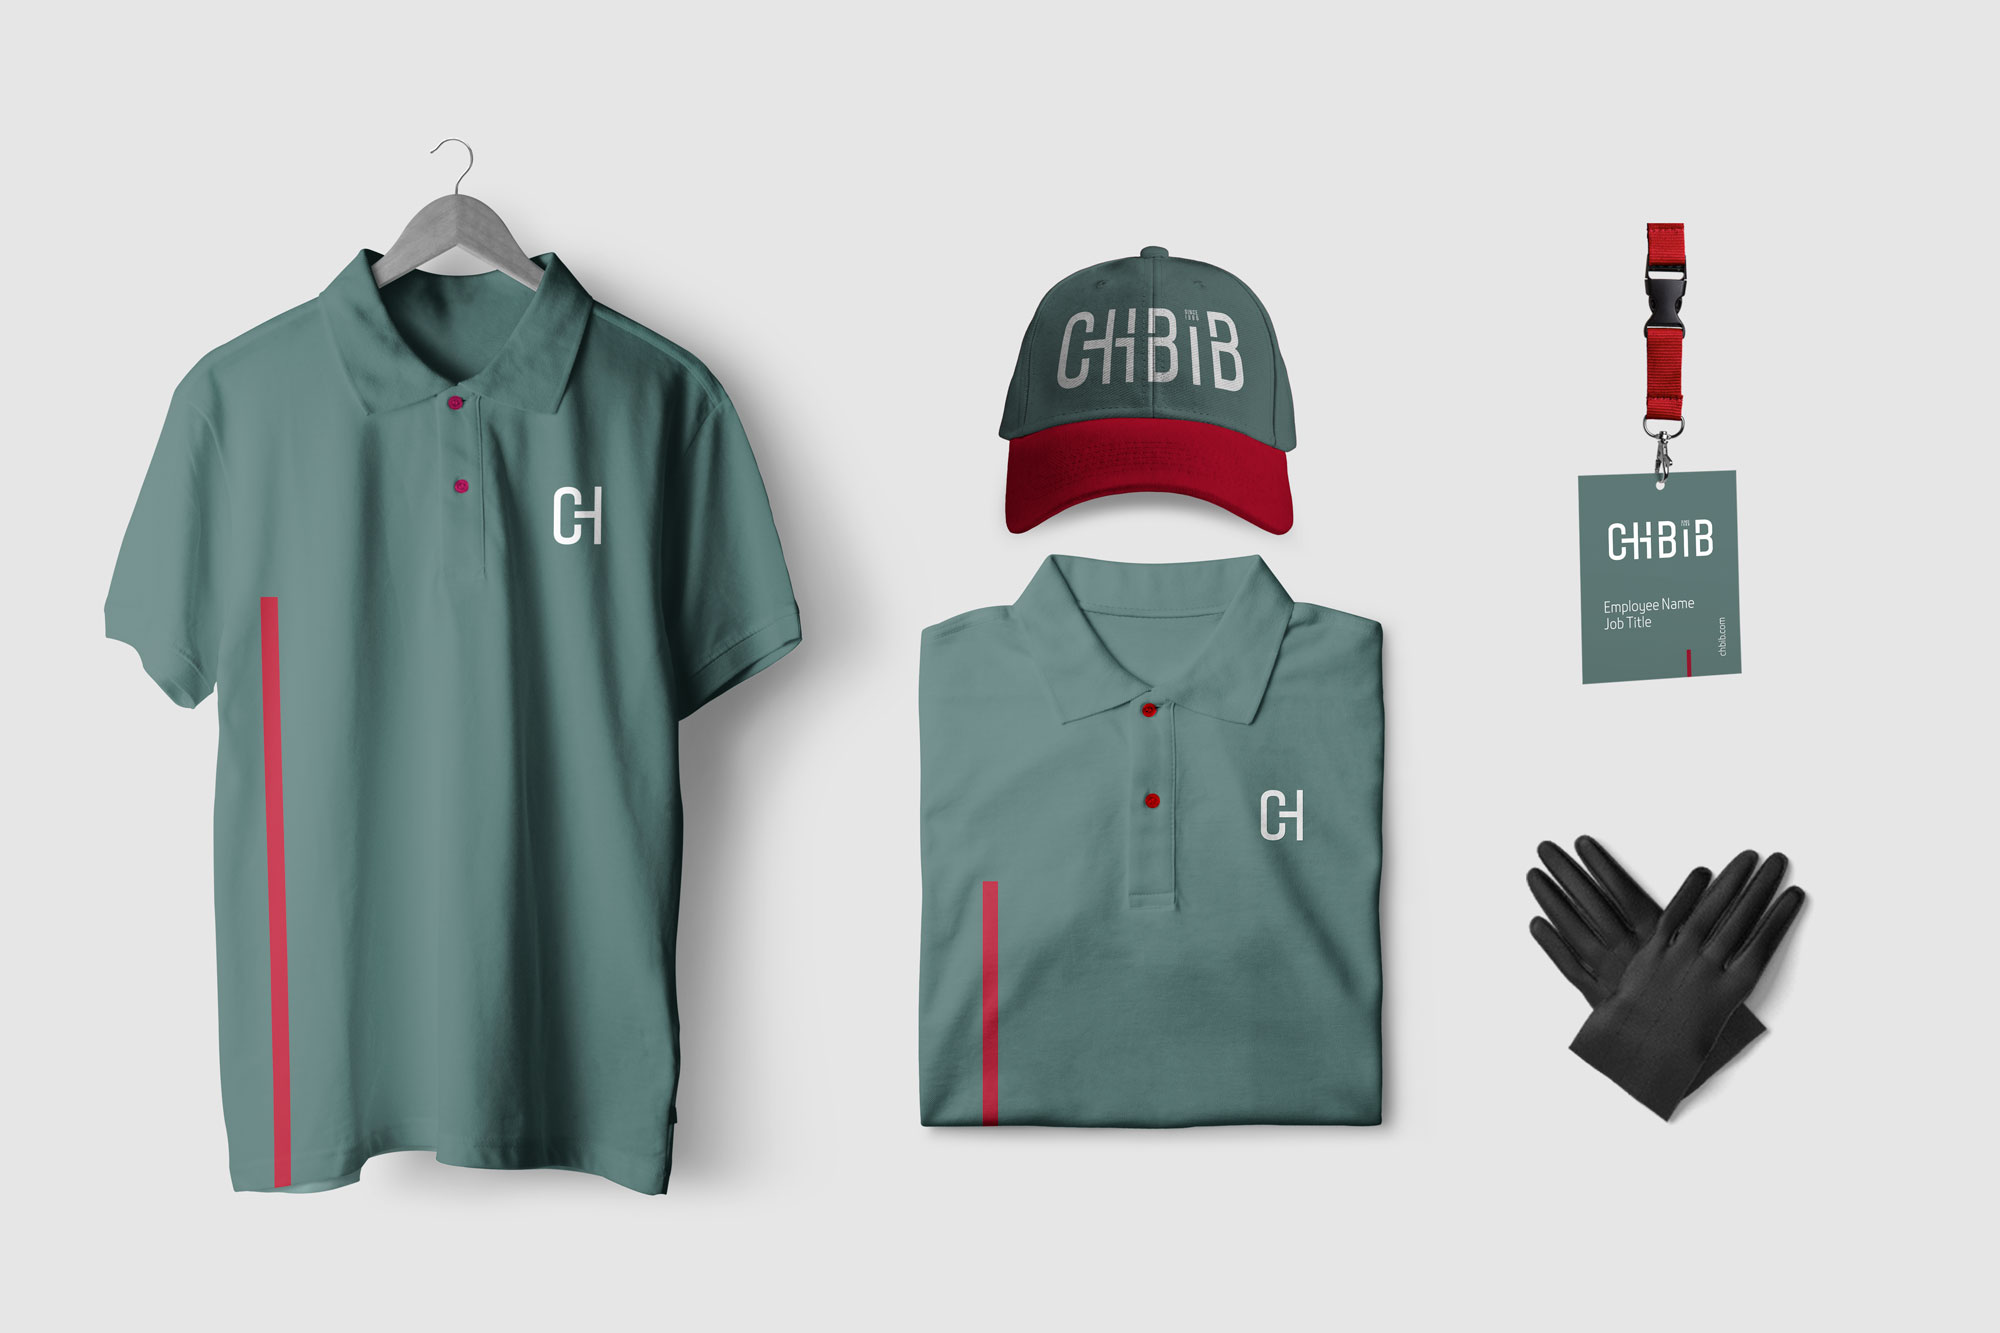 Chbib-Uniform-01